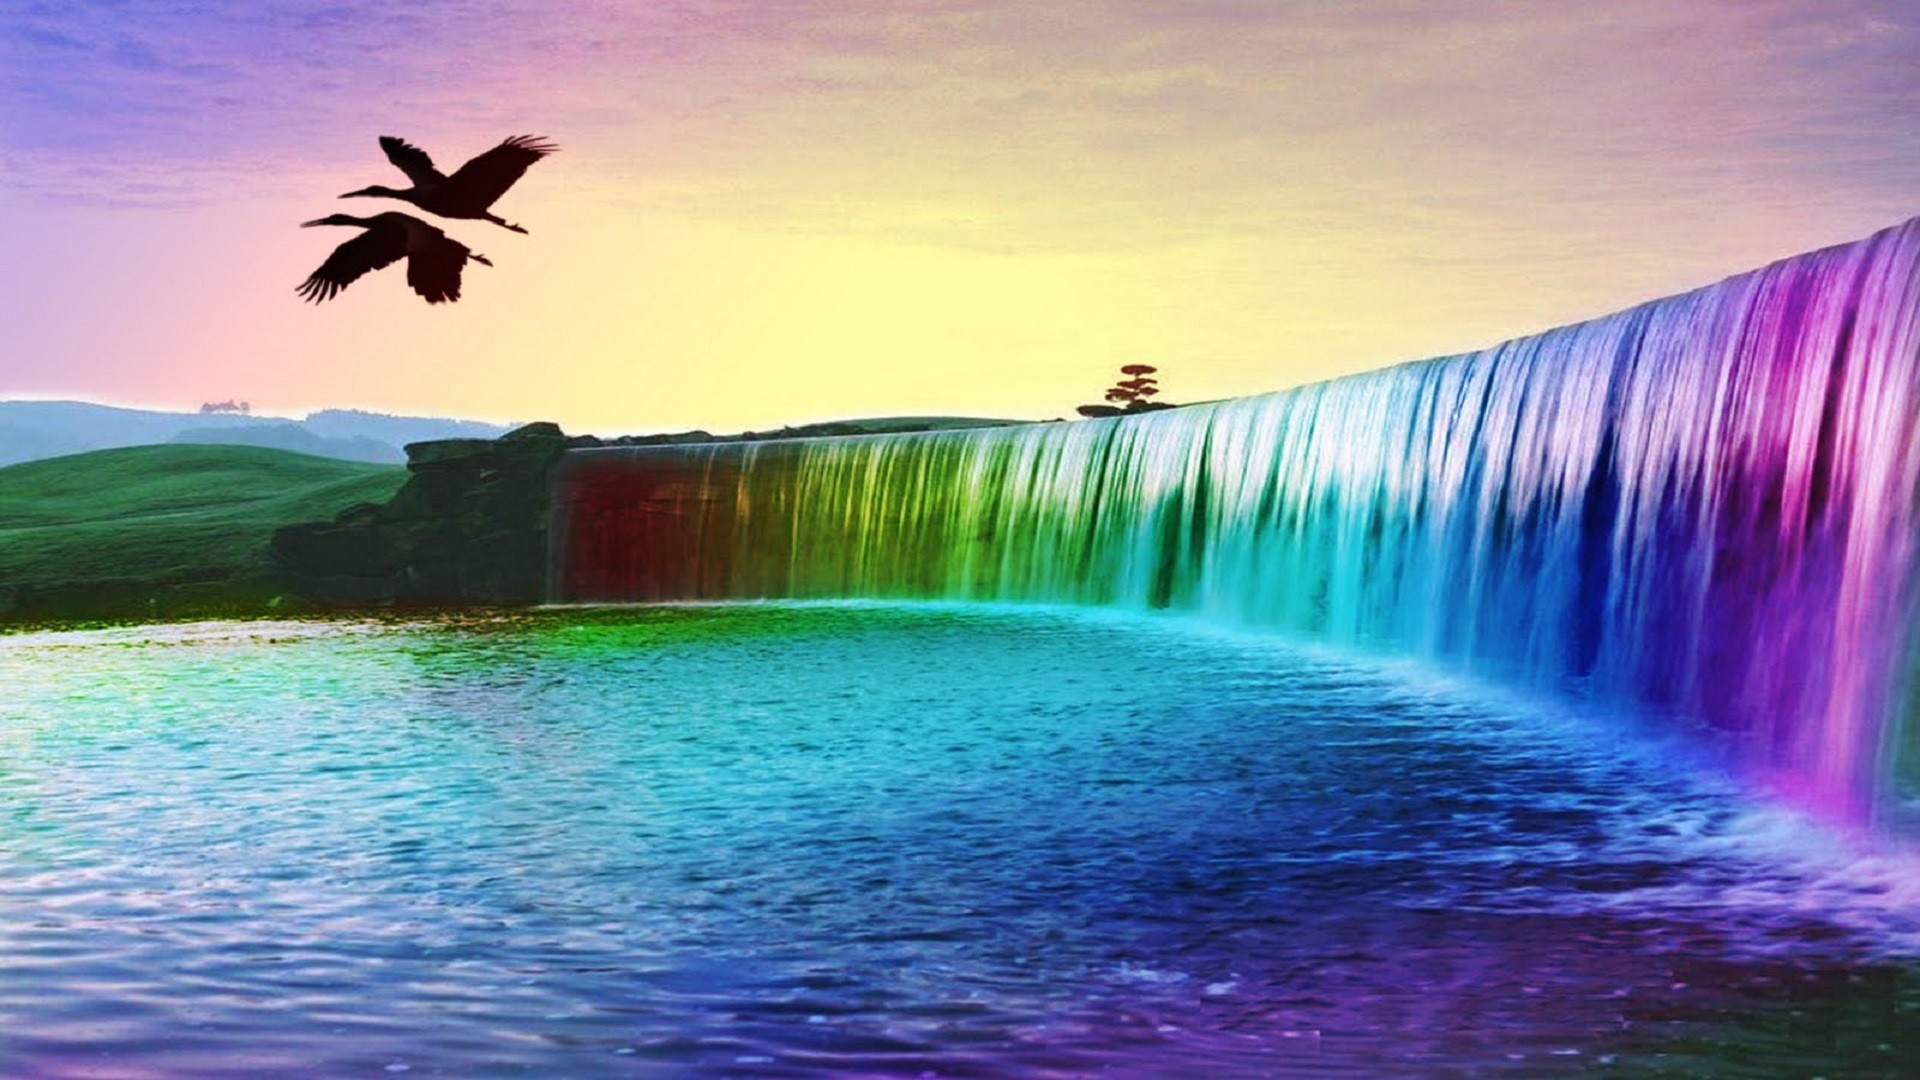 3d background images (74+ pictures)